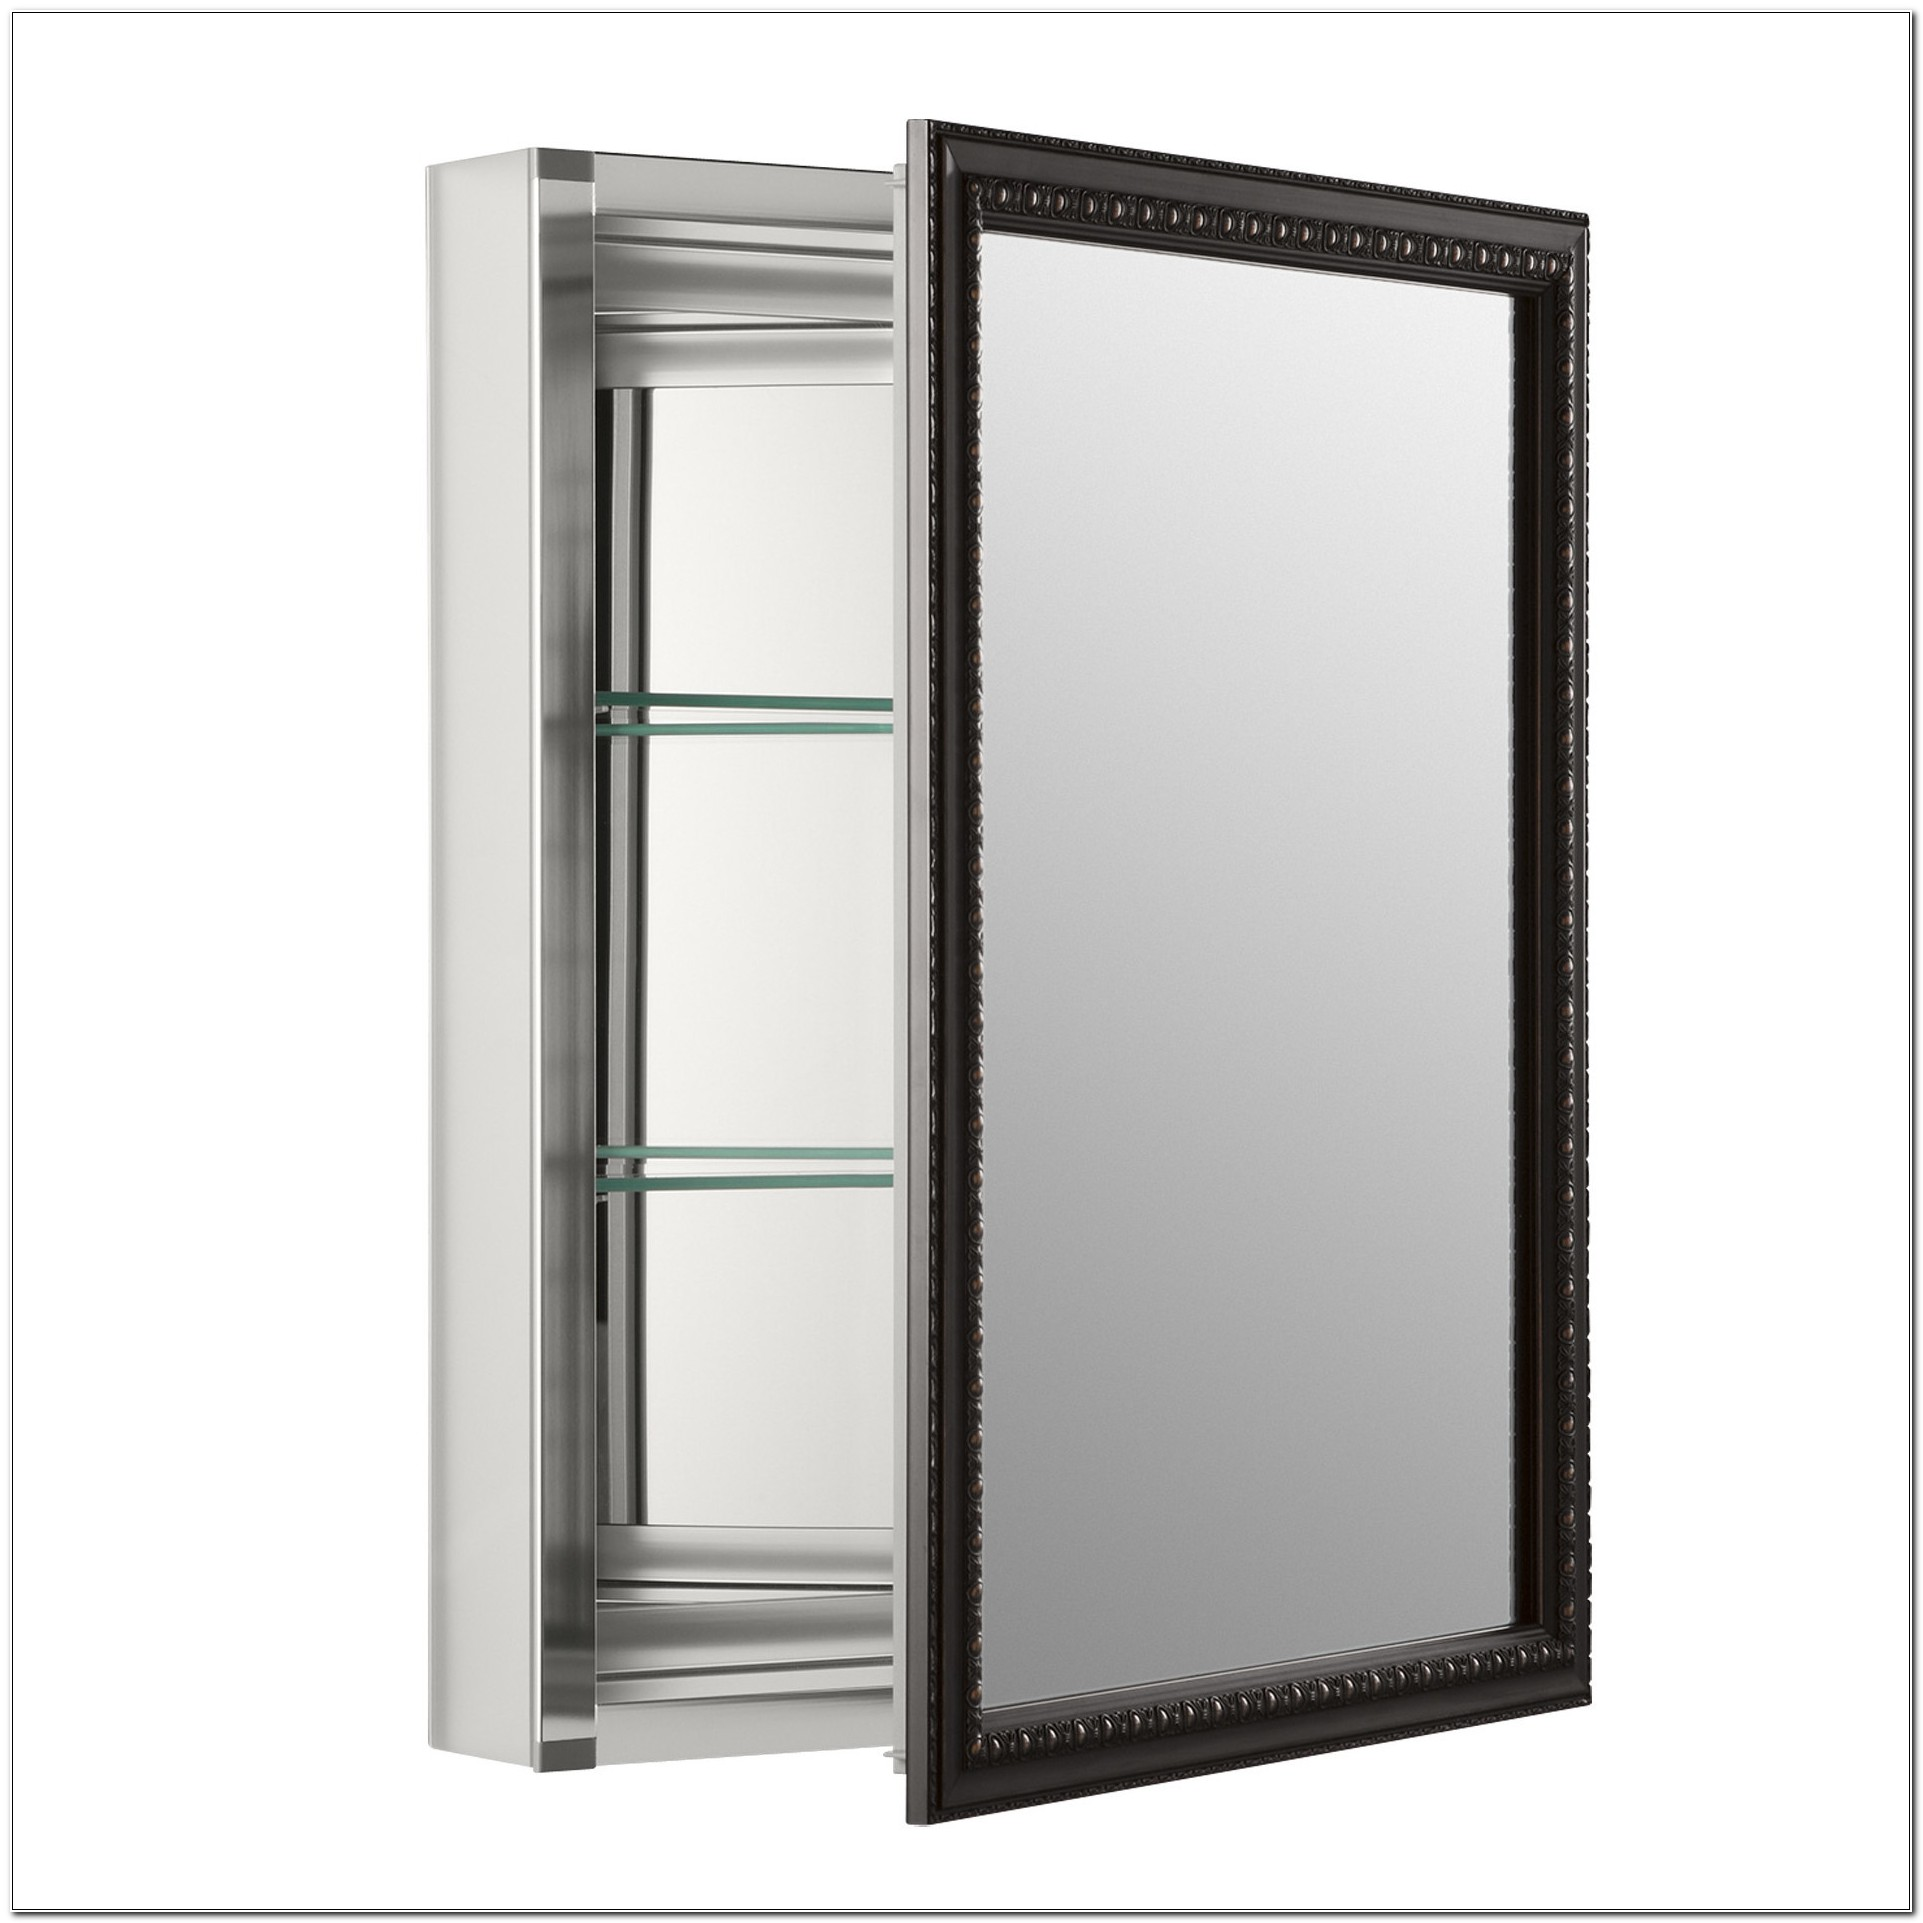 Kohler Recessed Medicine Cabinets With Mirrors